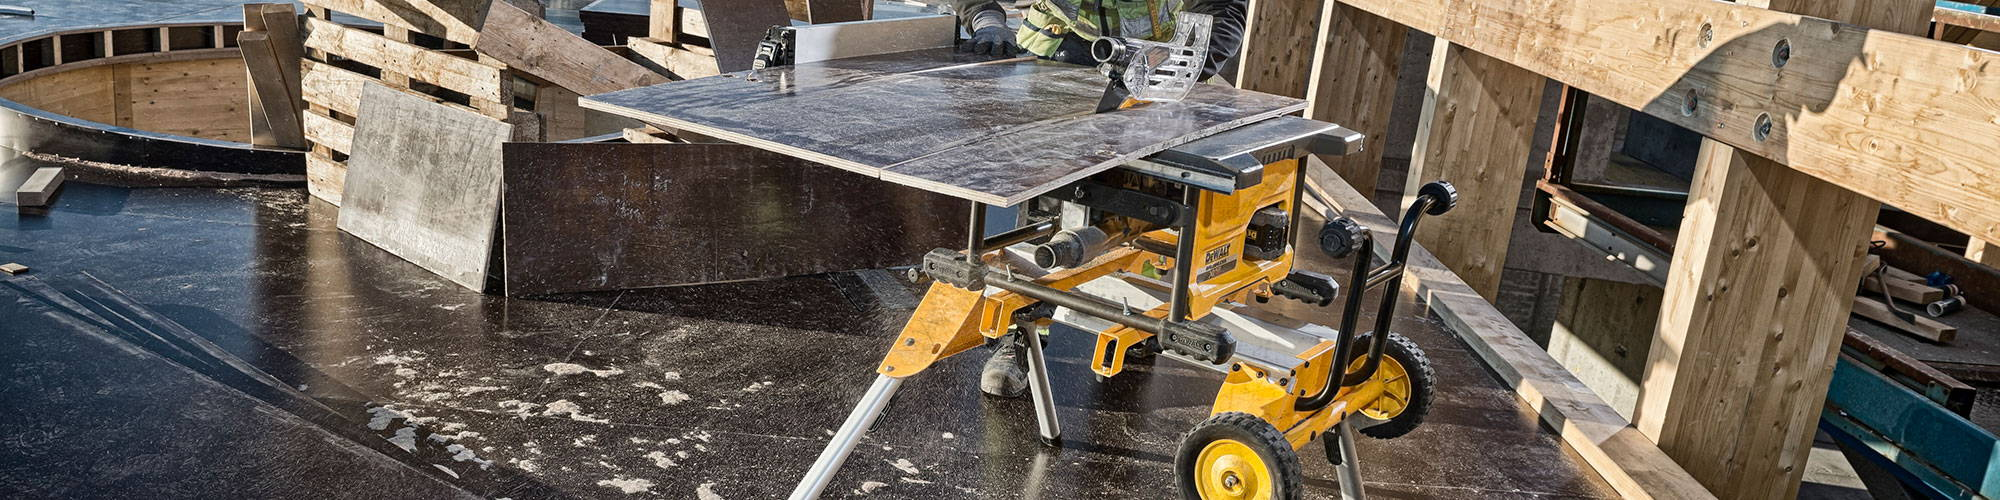 Why you should own a Table Saw